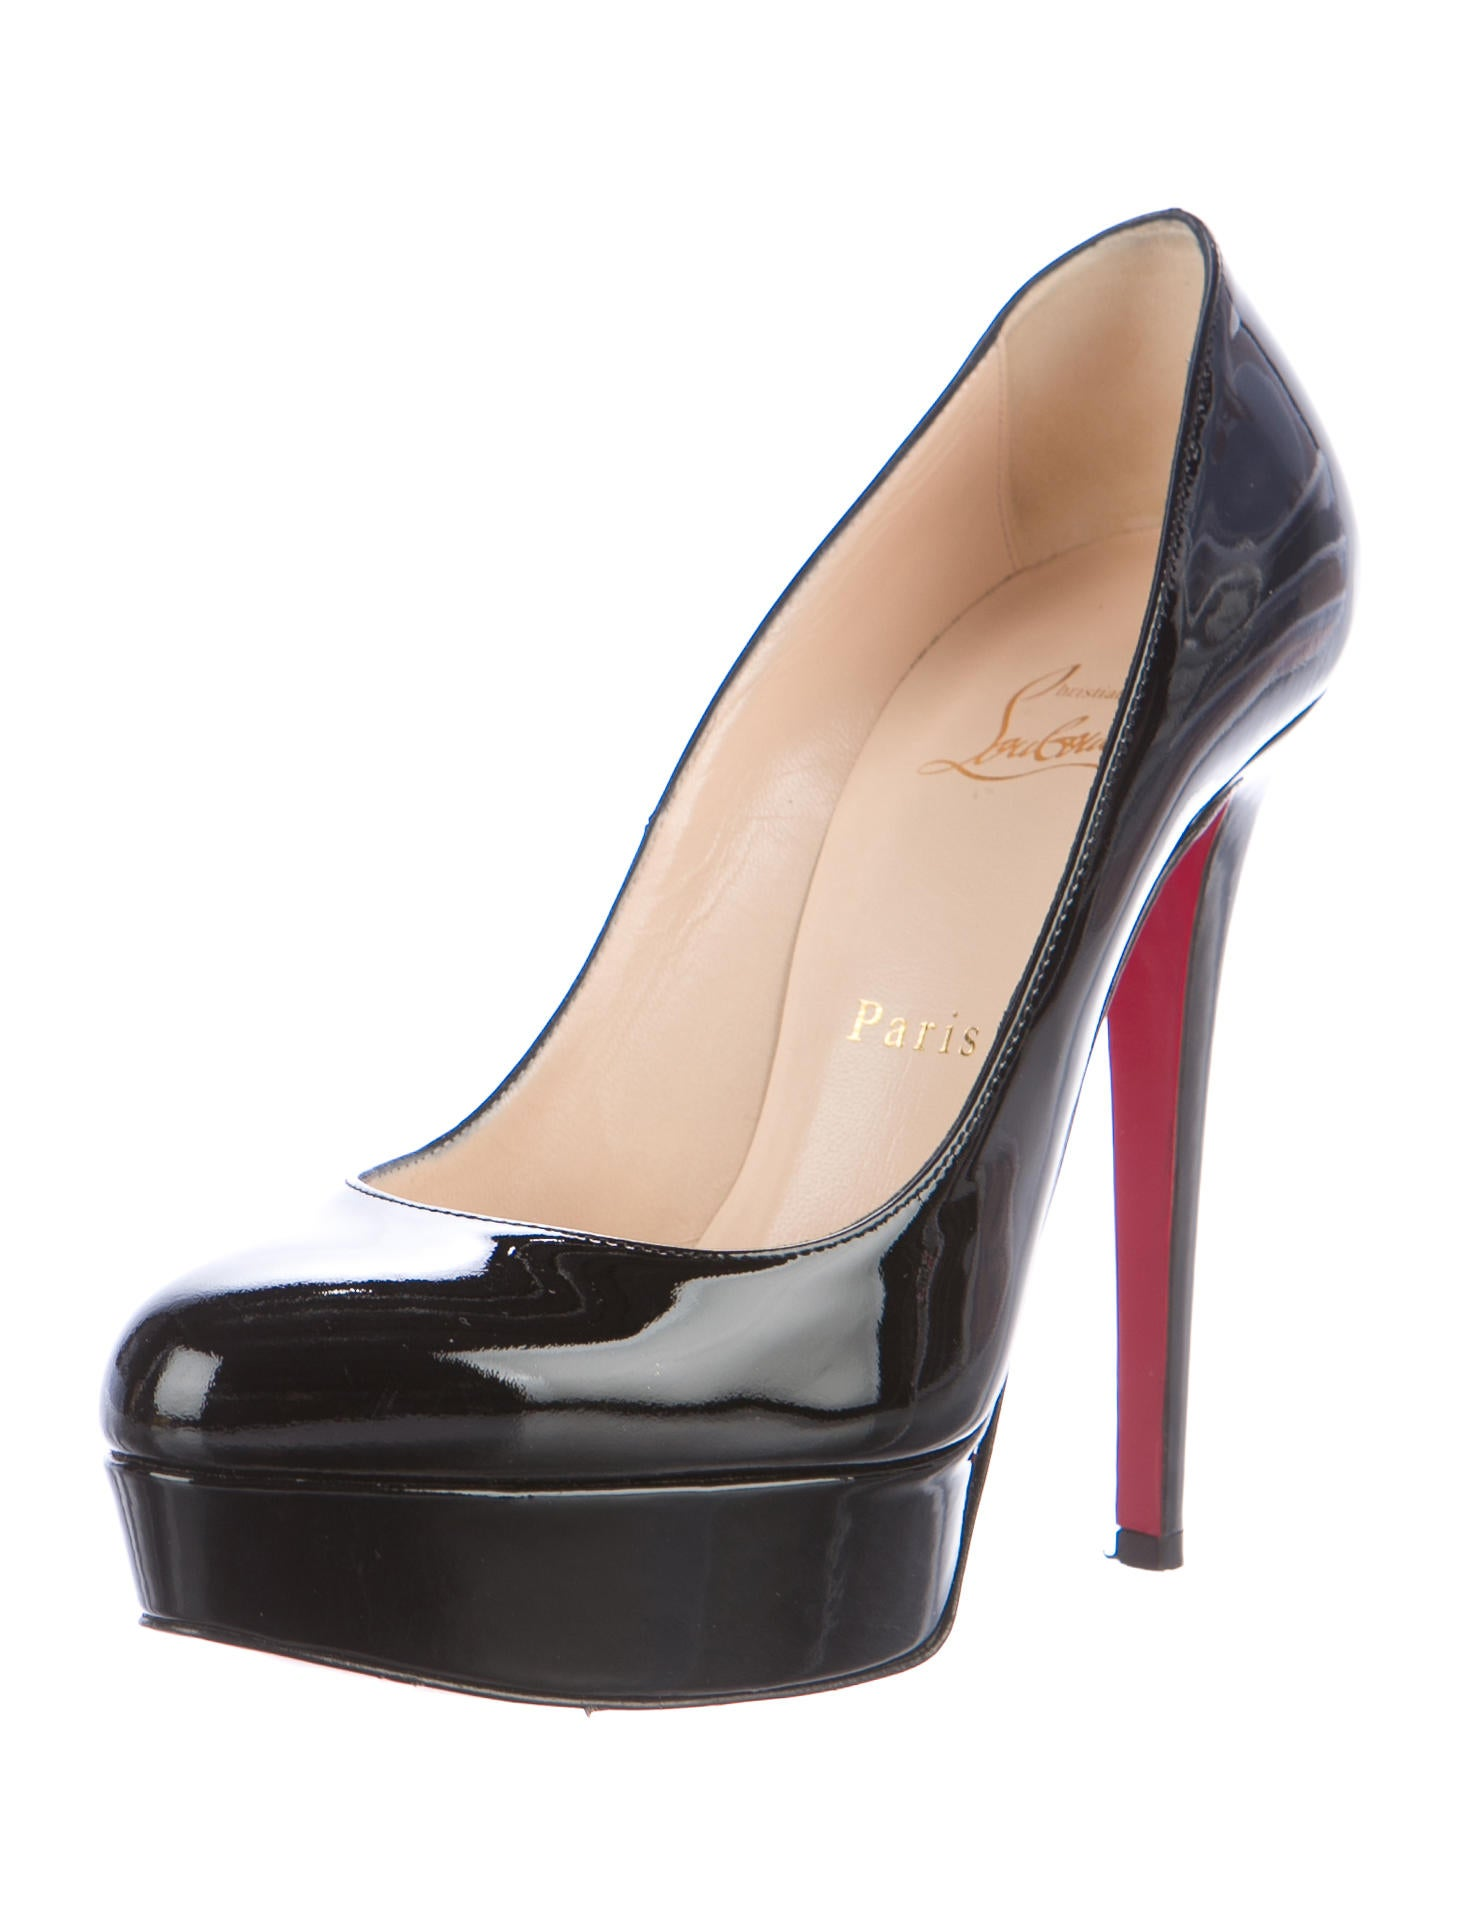 e221450d0e5 Buy Christian Louboutin Shoes Uk Zip Down The Back Boots